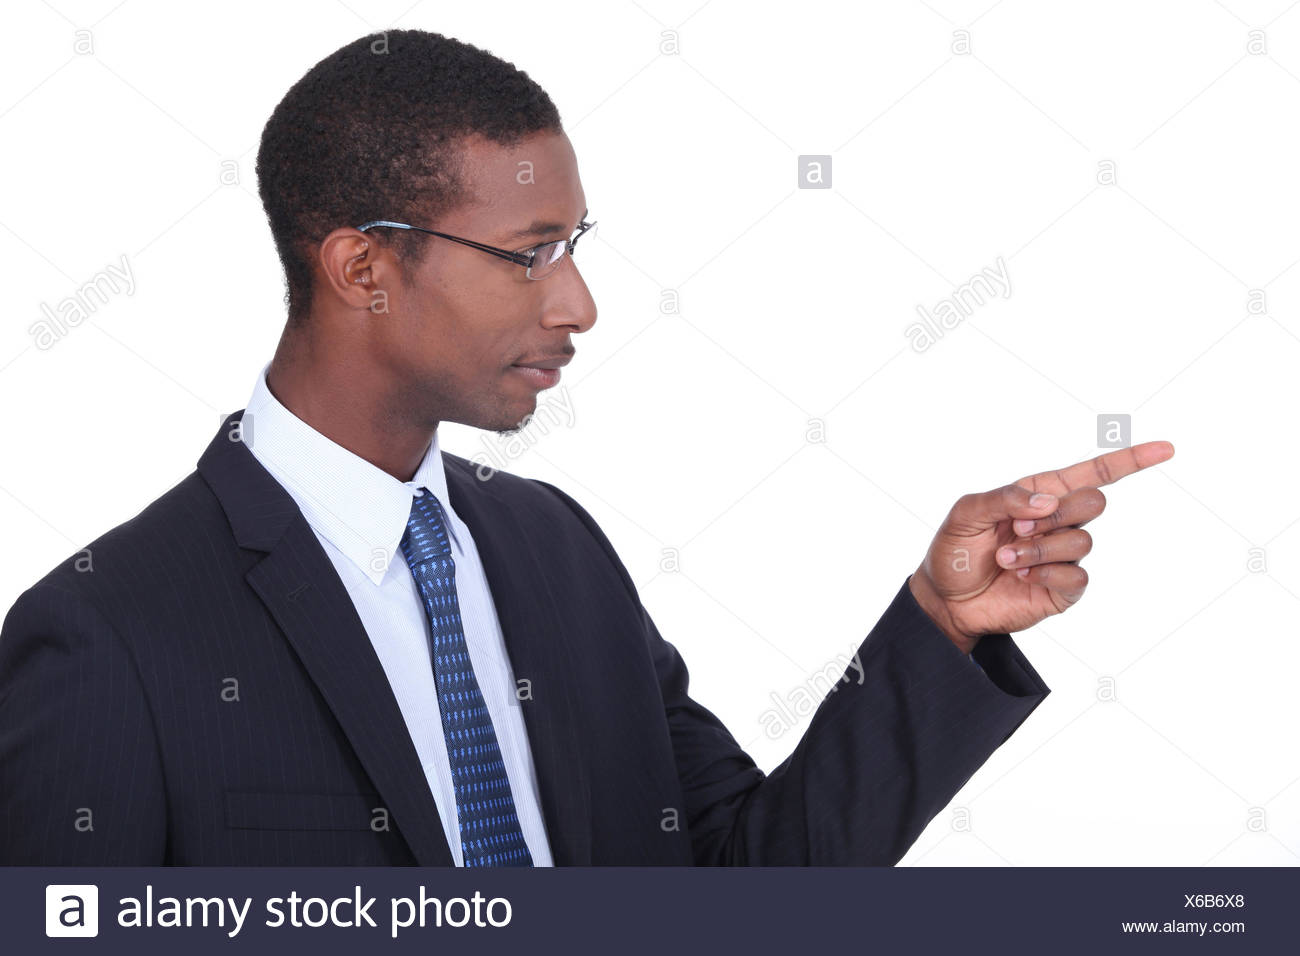 Profile shot of a man in a suit pointing his finger - Stock Image